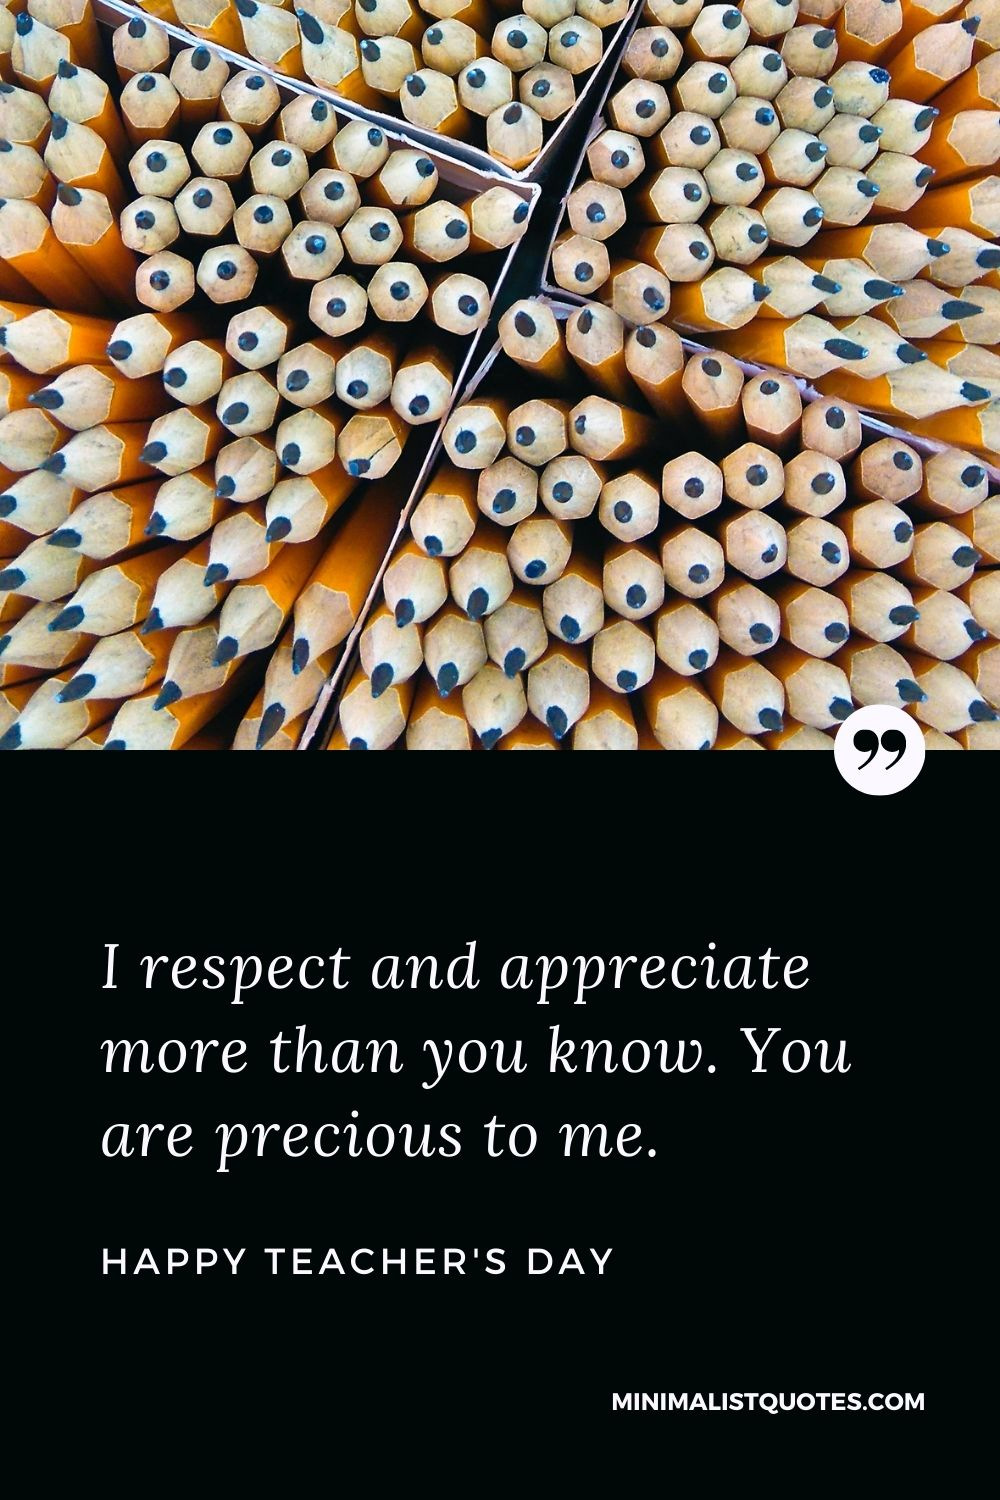 Teacher's Day wish, quote & message with image: I respect and appreciate more than you know. You are precious to me. Happy Teacher's Day!